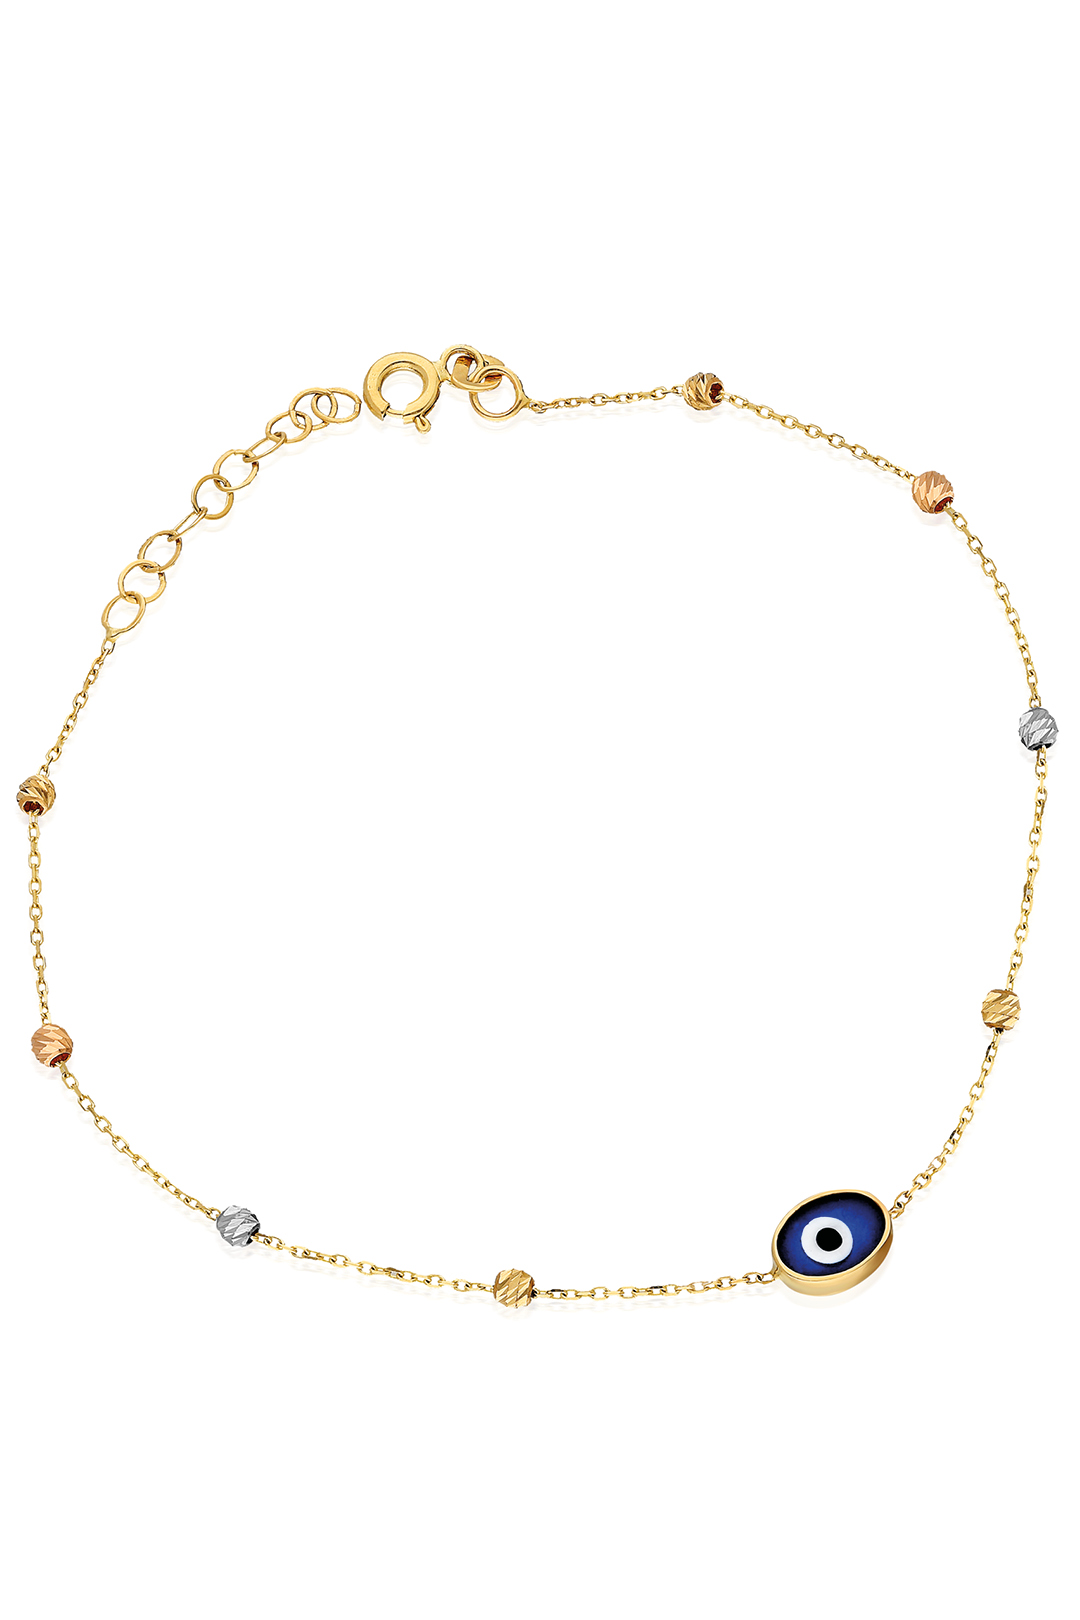 COLOURED BALLS AND EVIL EYE BRACELET